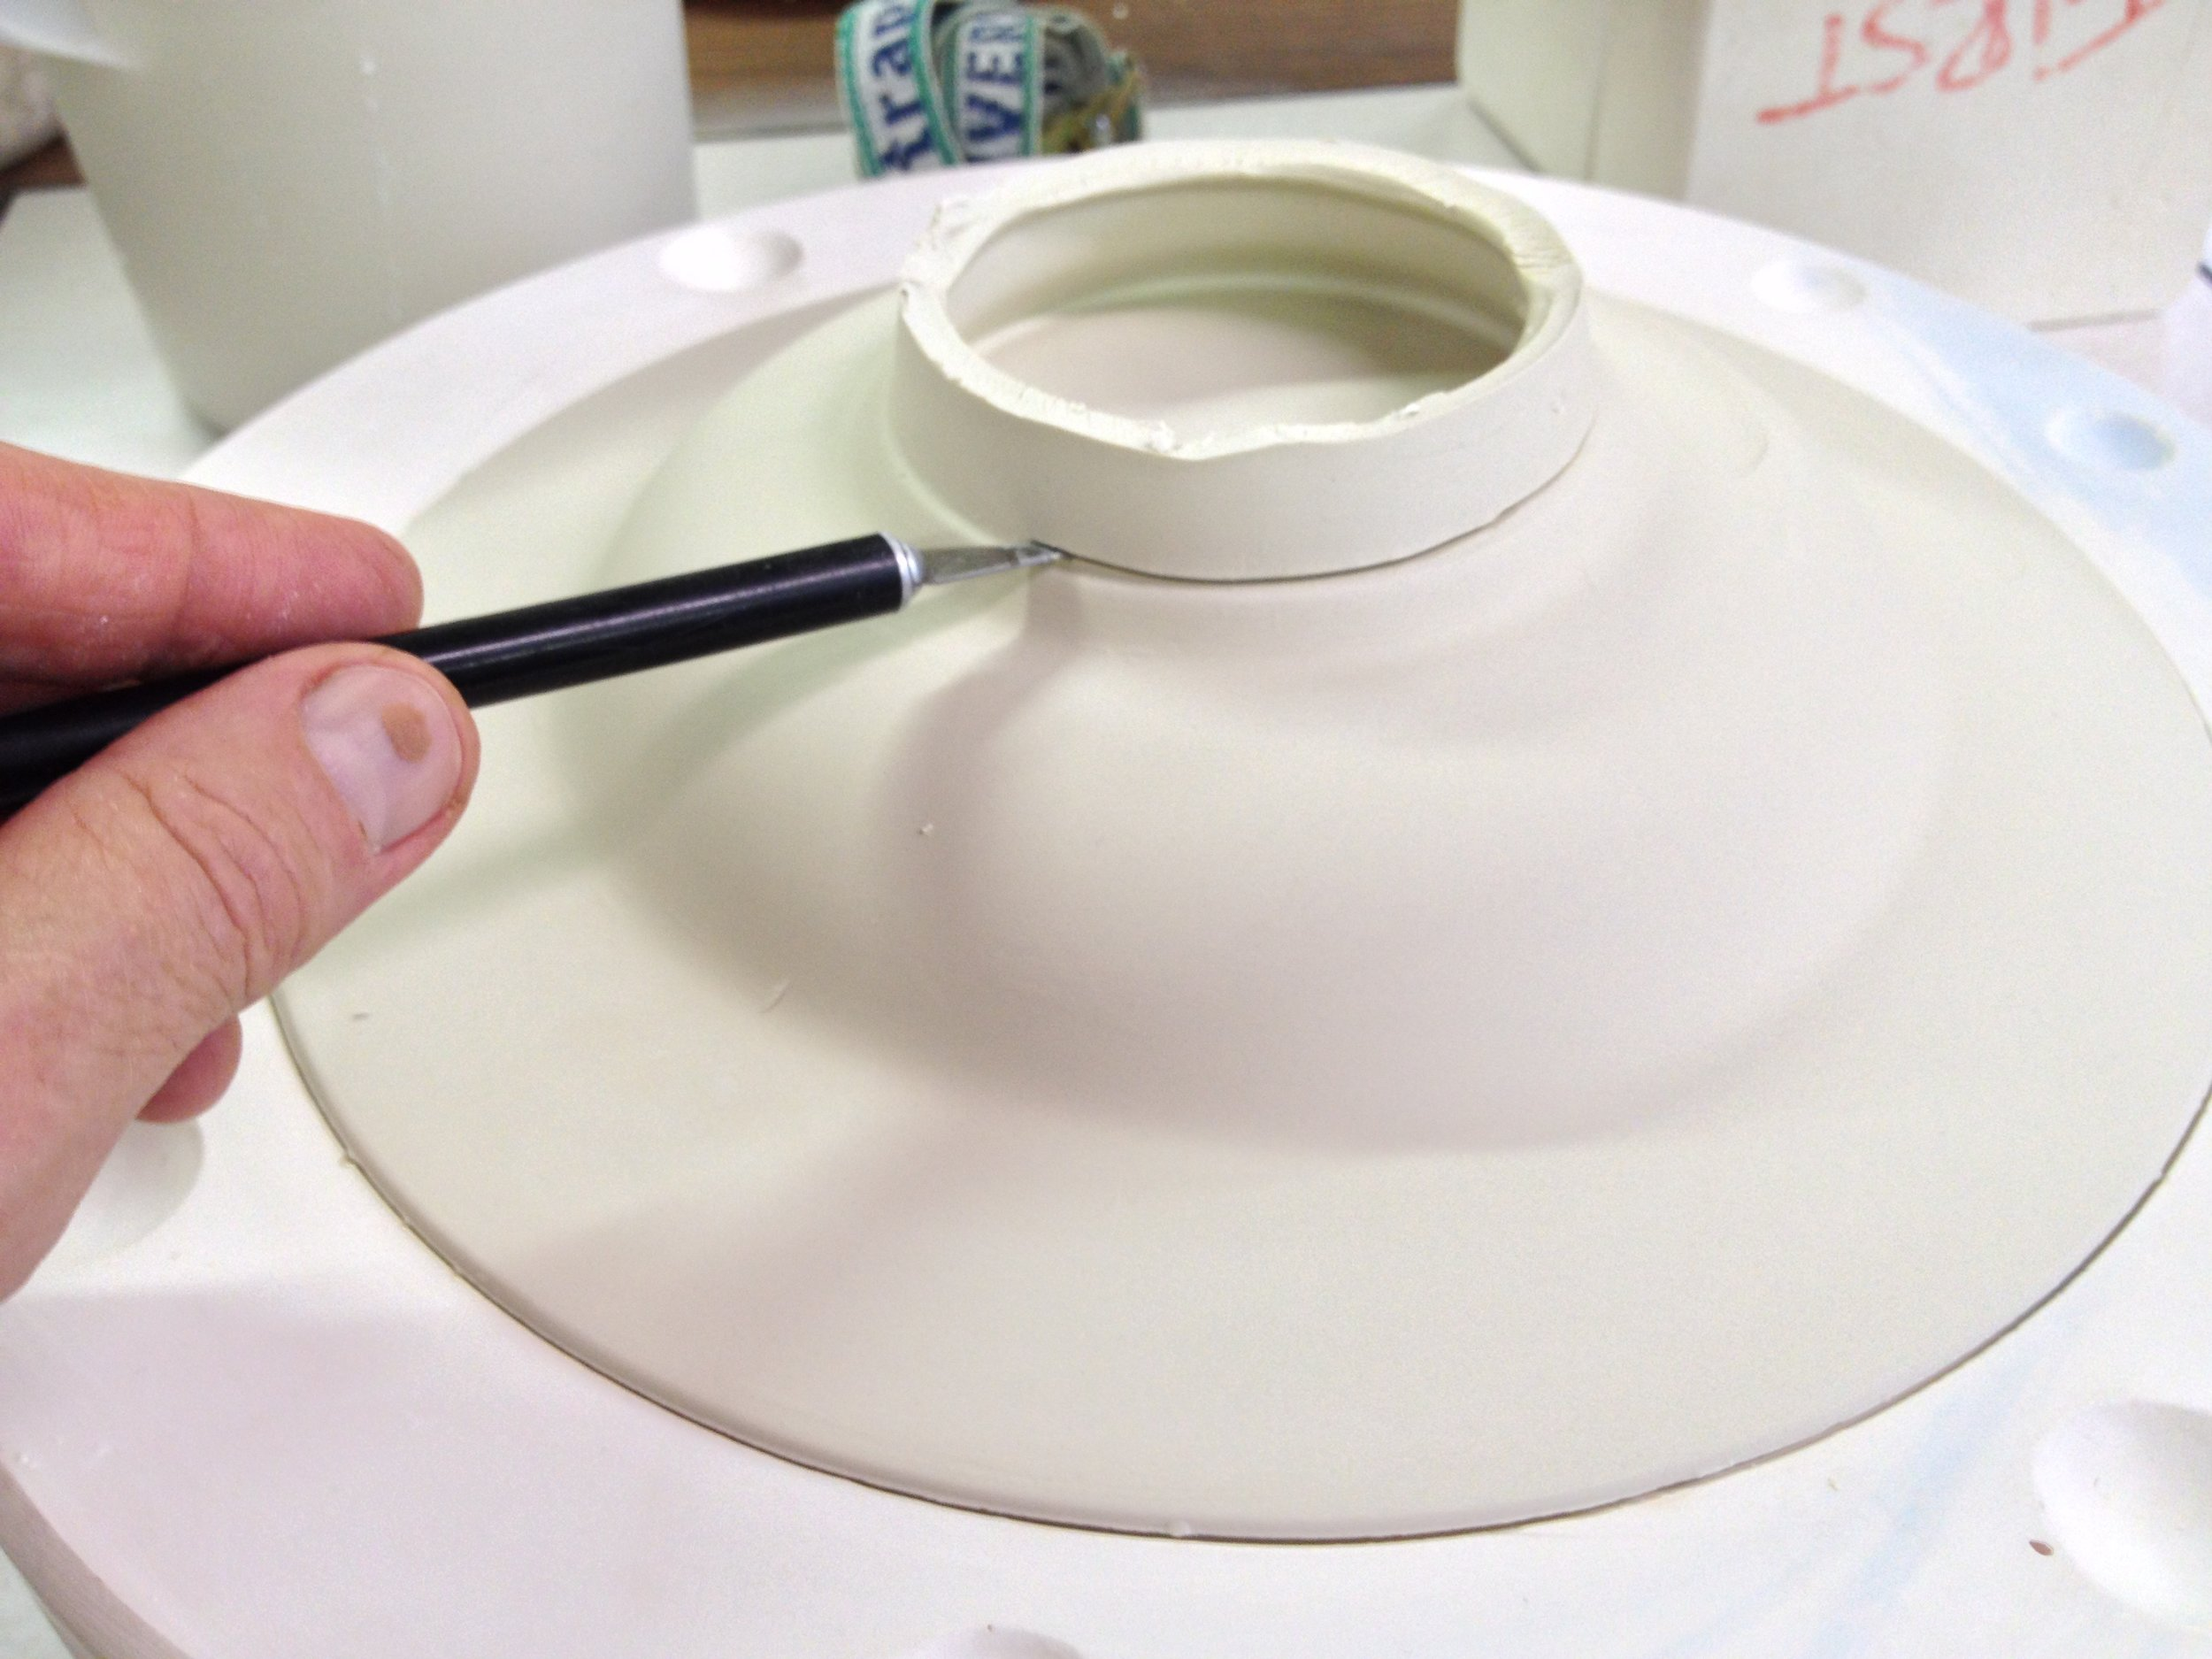 The Art of Mold-Making - Learn how to use plaster to make production-quality molds.